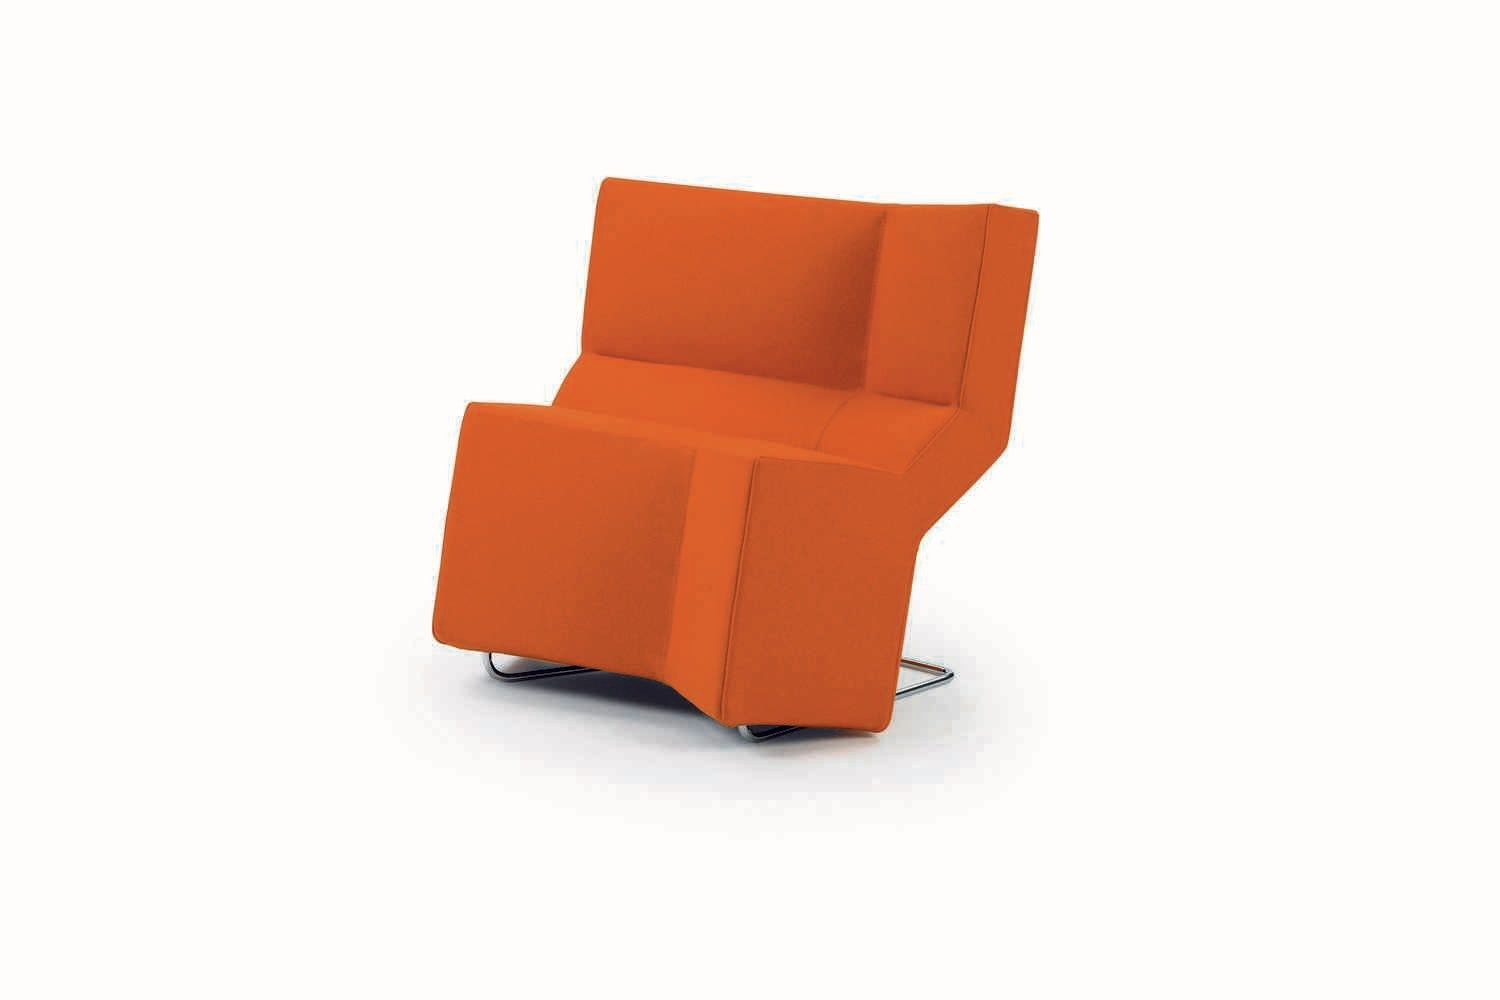 Chaos by Konstantin Grcic for ClassiCon